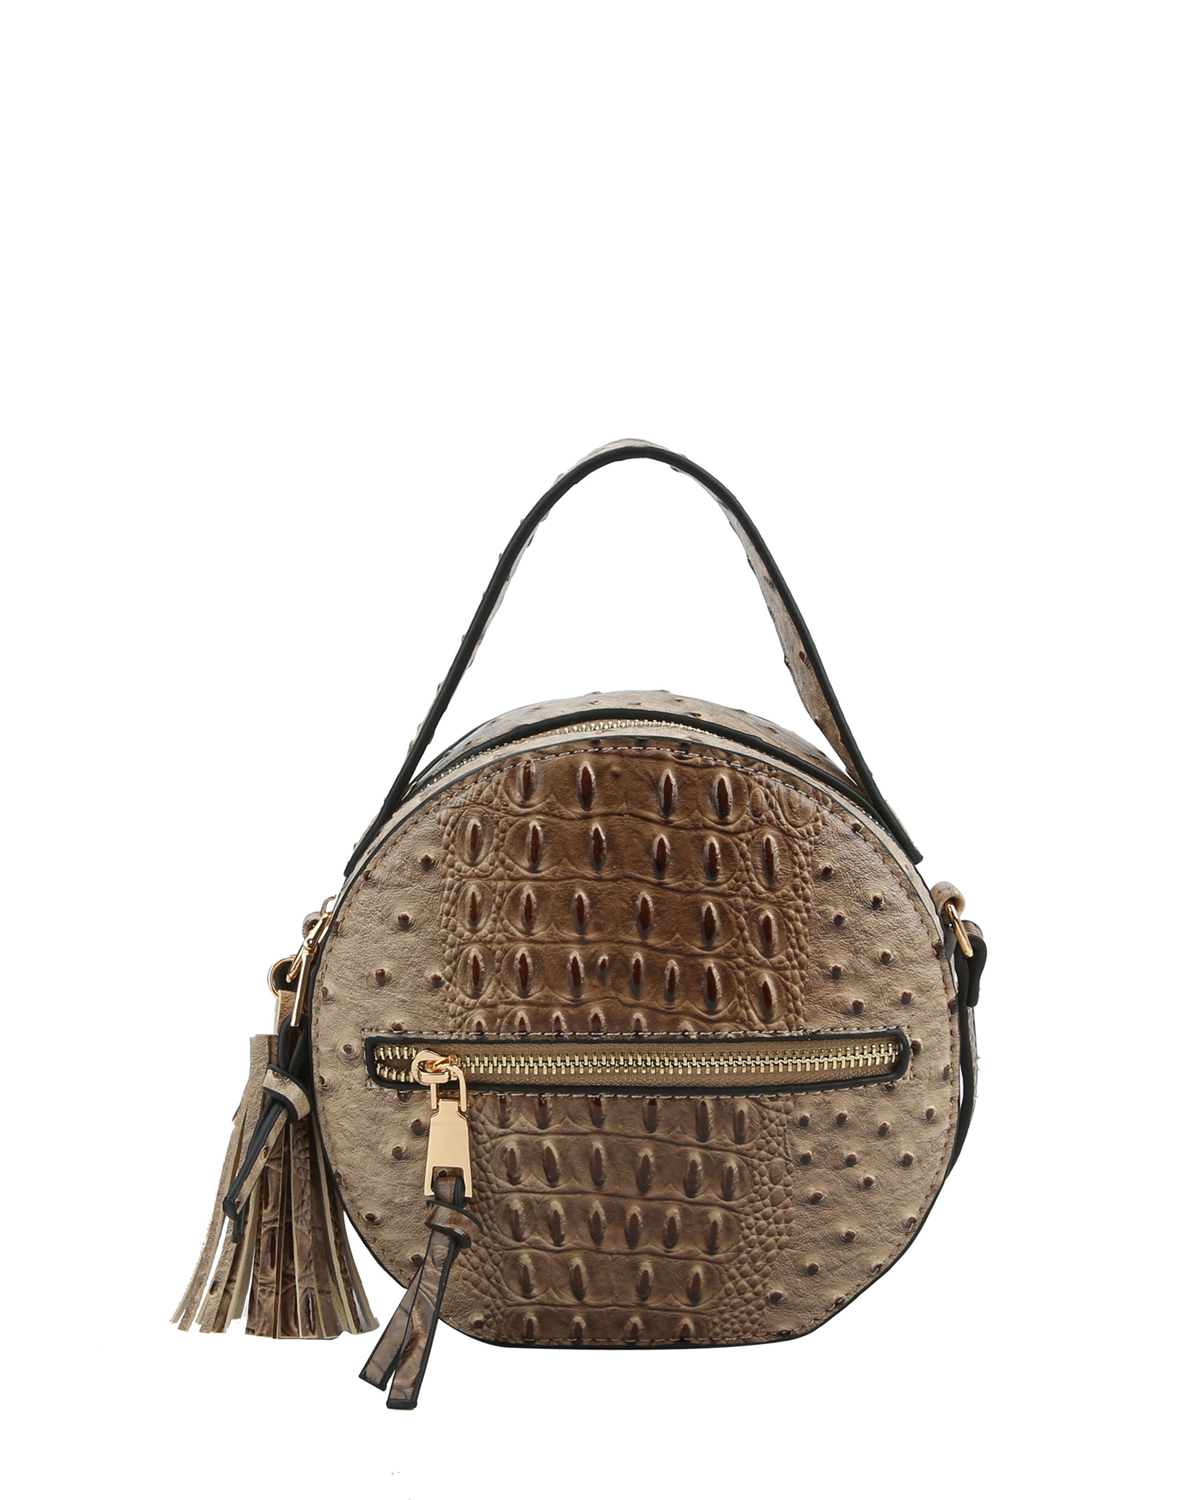 L0198(TP)-wholesale-messenger-bag-alligator-ostrich-tassel-animal-pattern-vegan-pocket-circle-shaped-crossbody(0).jpg